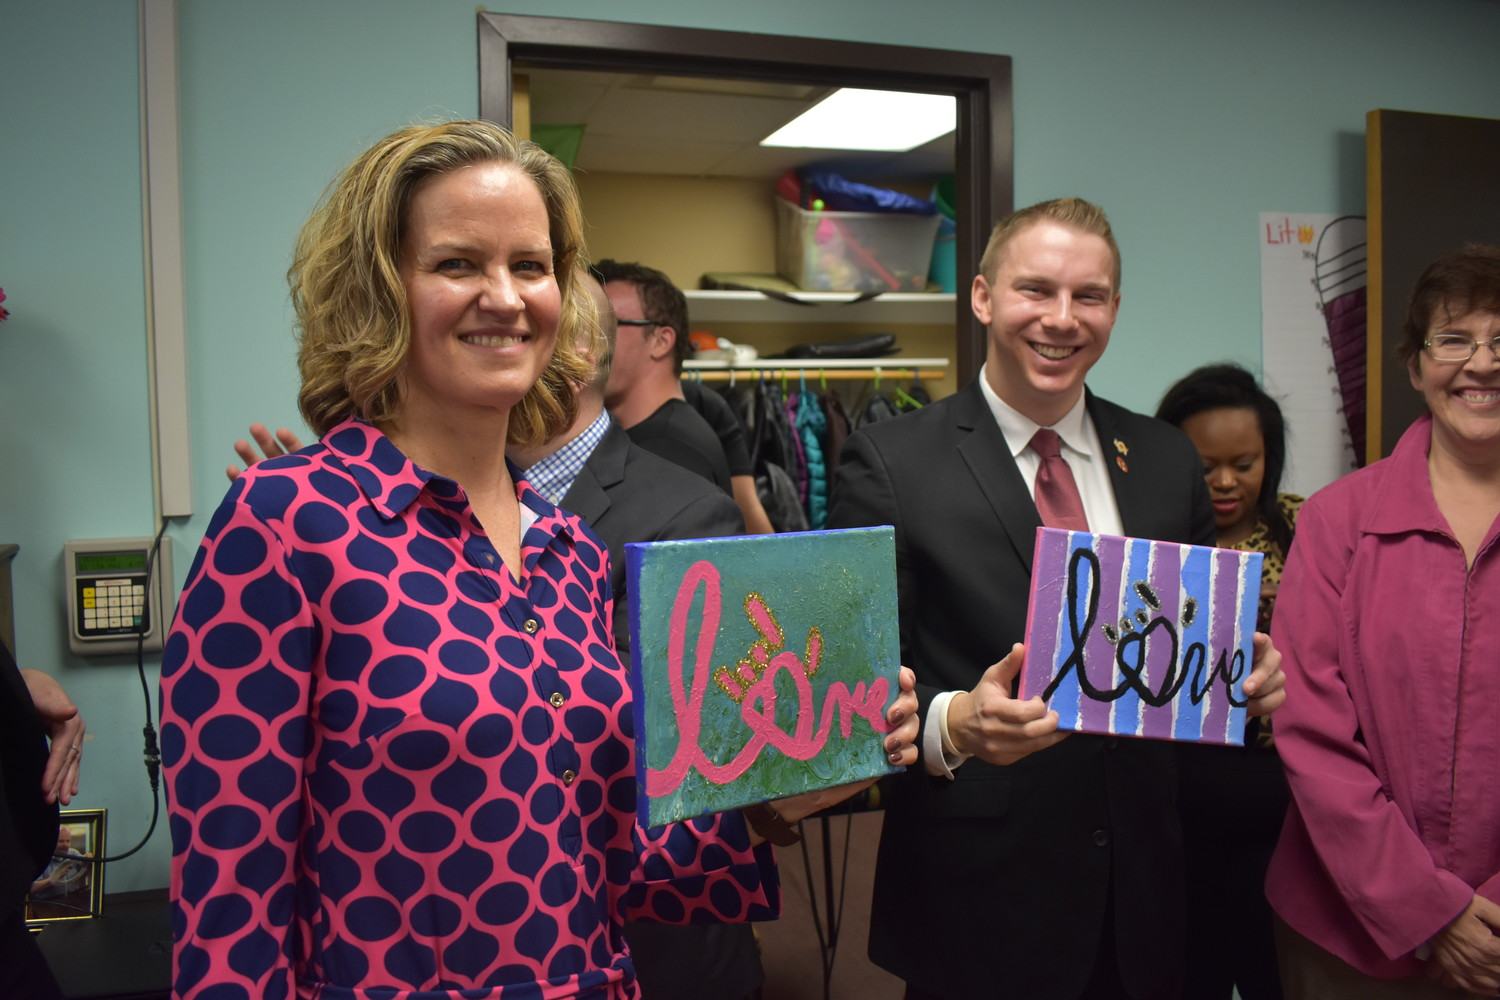 County Executive Laura Curran and Josh Lafazan received hand-painted canvases from Day Habilitation members.